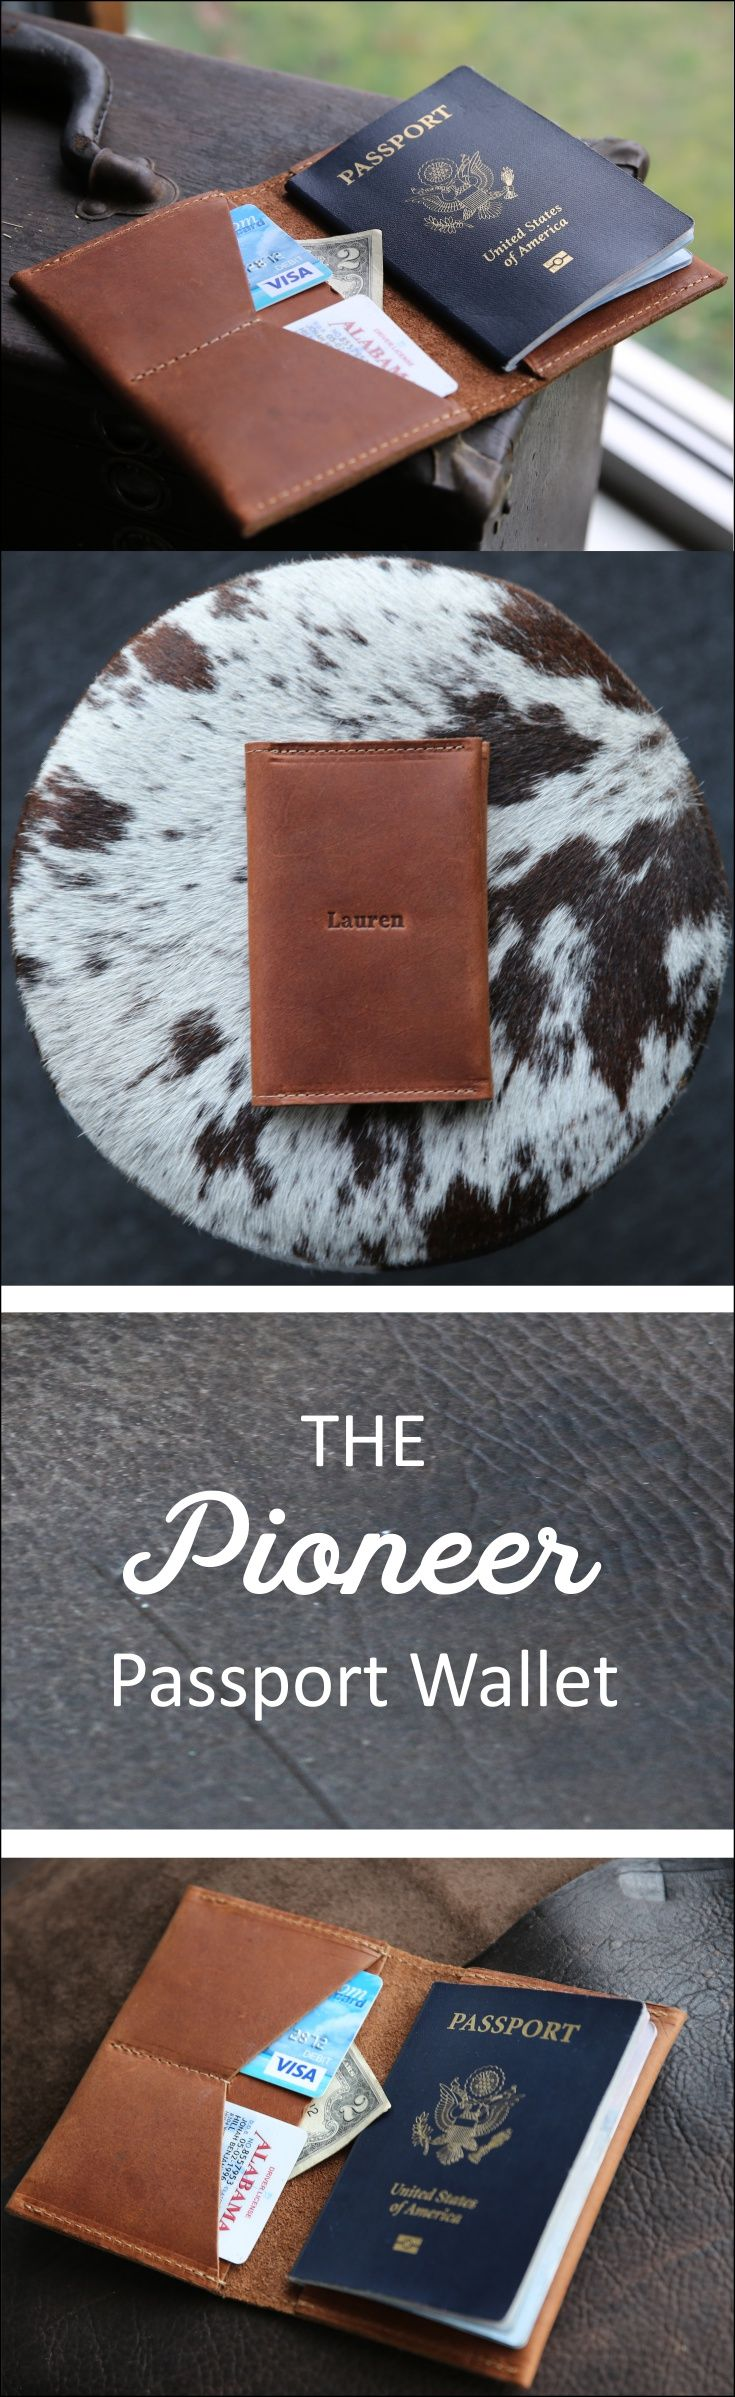 The Pioneer Fine Leather Passport Wallet is a unique and timeless item! It is handmade right here in our shop with the finest of Full Grain American leathers. We hand–pick our leather hides from a local tannery for a rustic look and feel. This is a gift that will be used and loved for a lifetime! It's perfect for the executive, professional, father, or dear friend in your life.